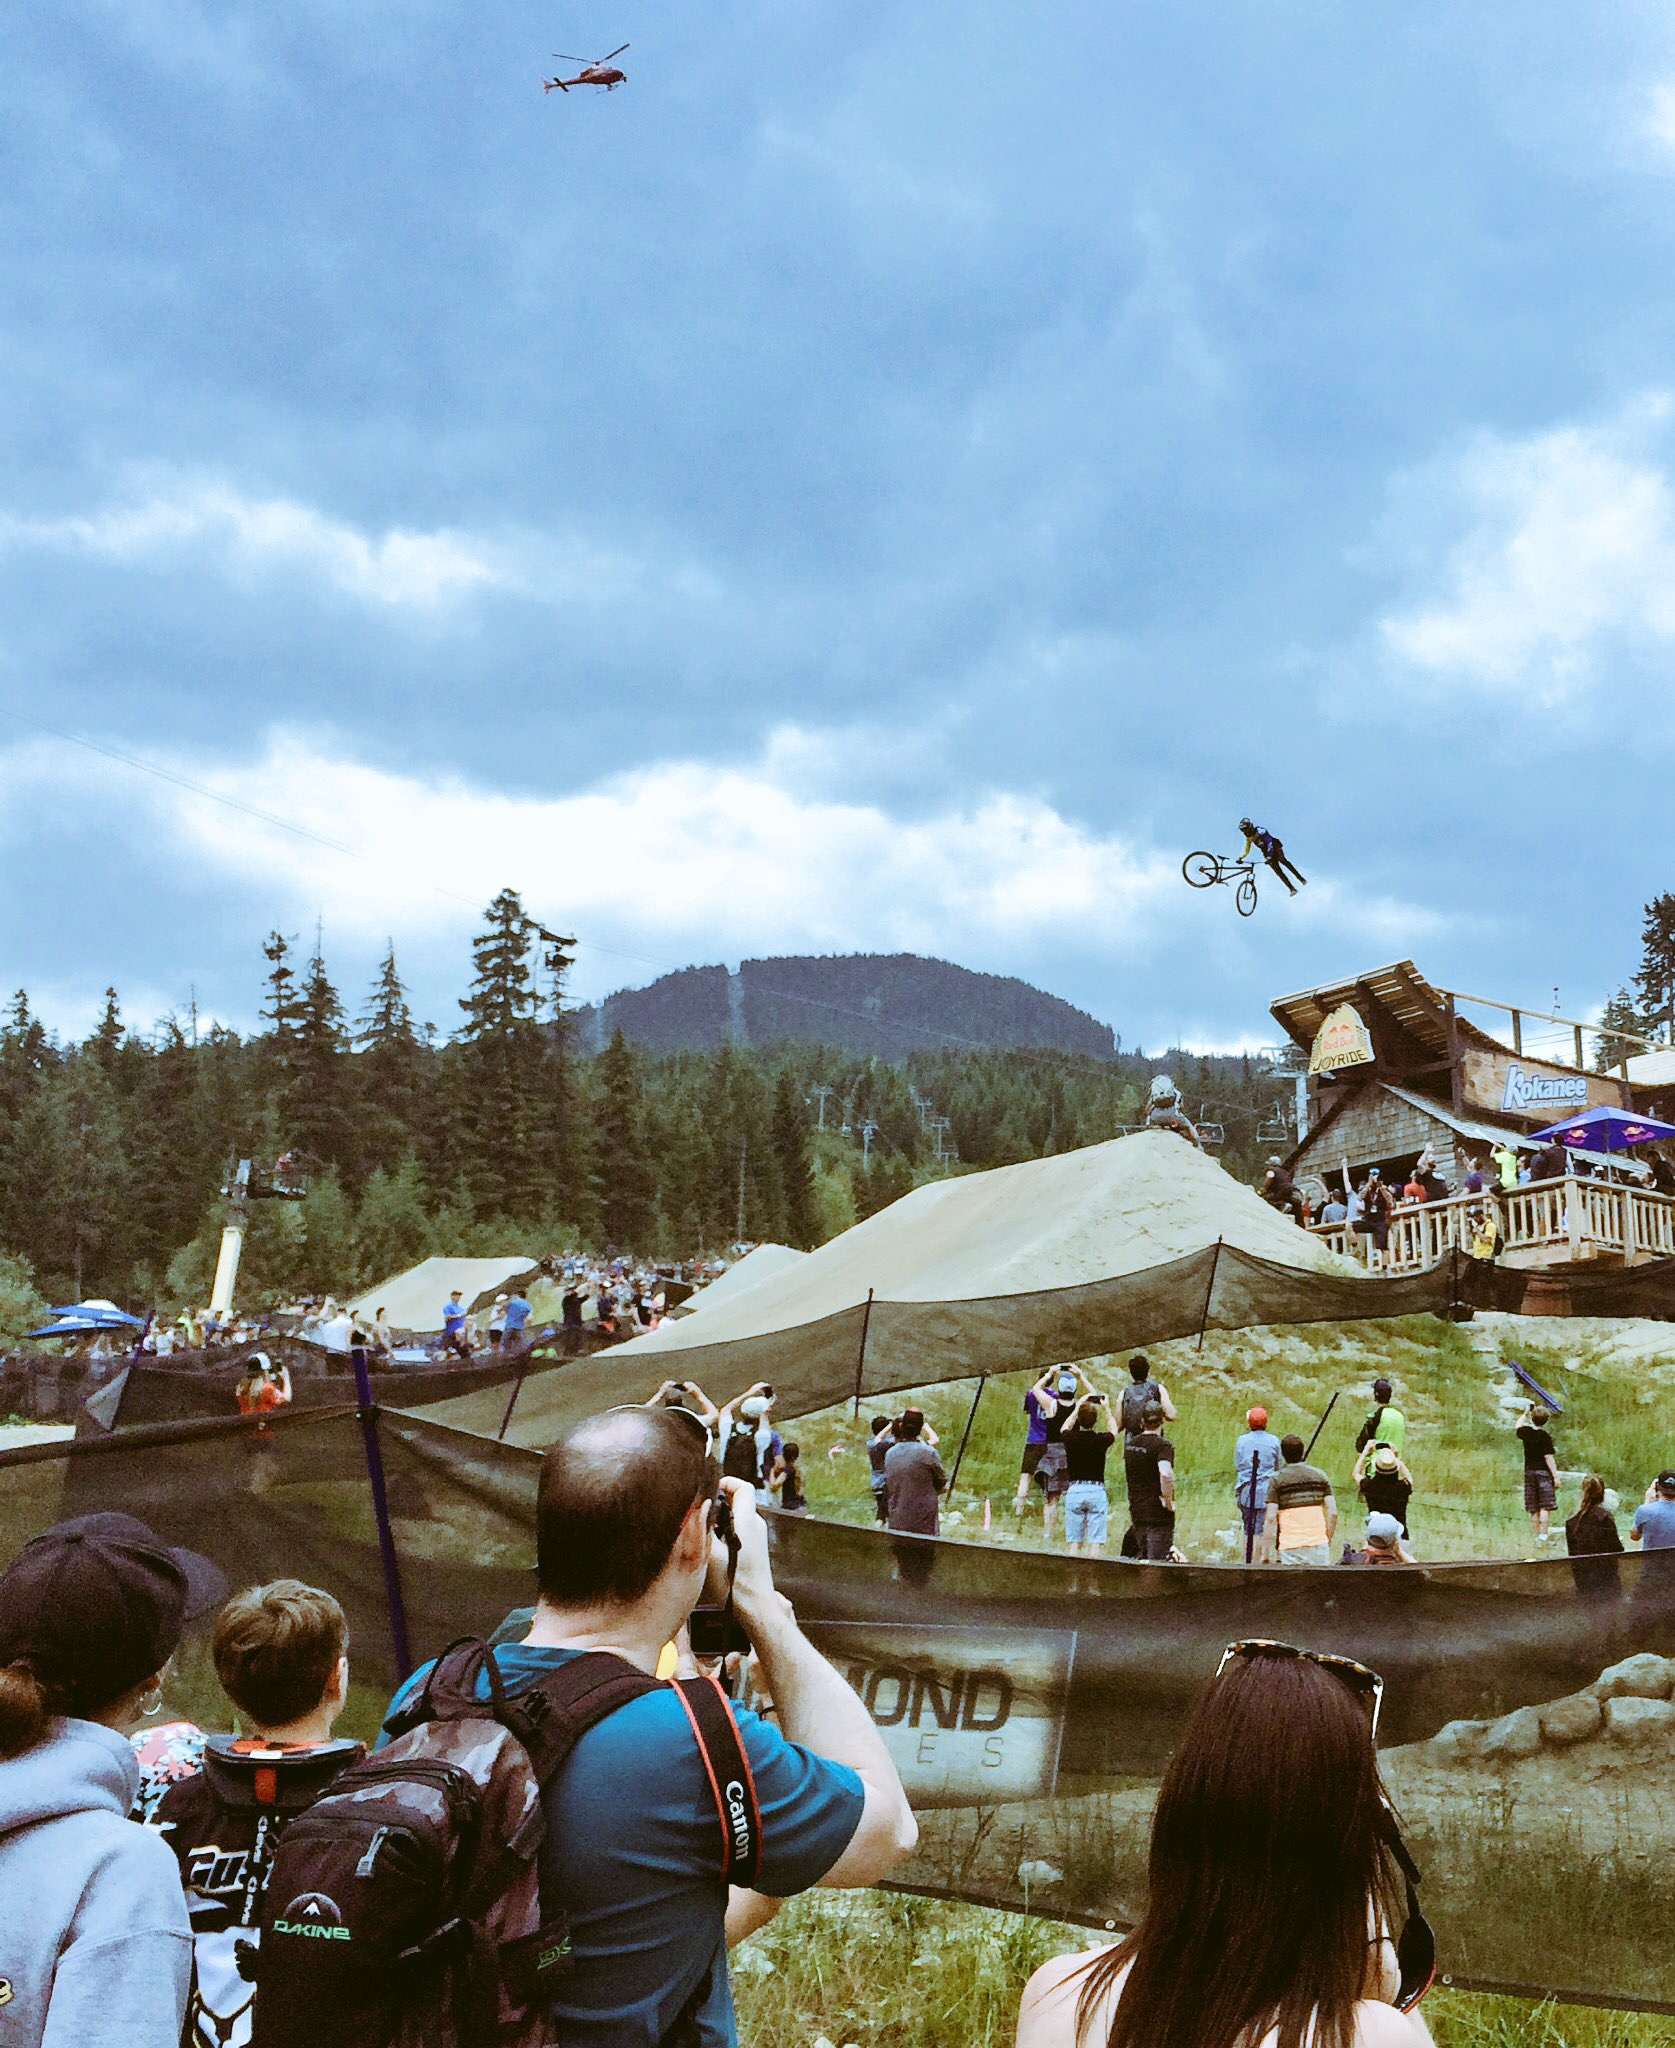 Red Bull Joyride from a mountainside viewing point - Photo credit: Blake Allen